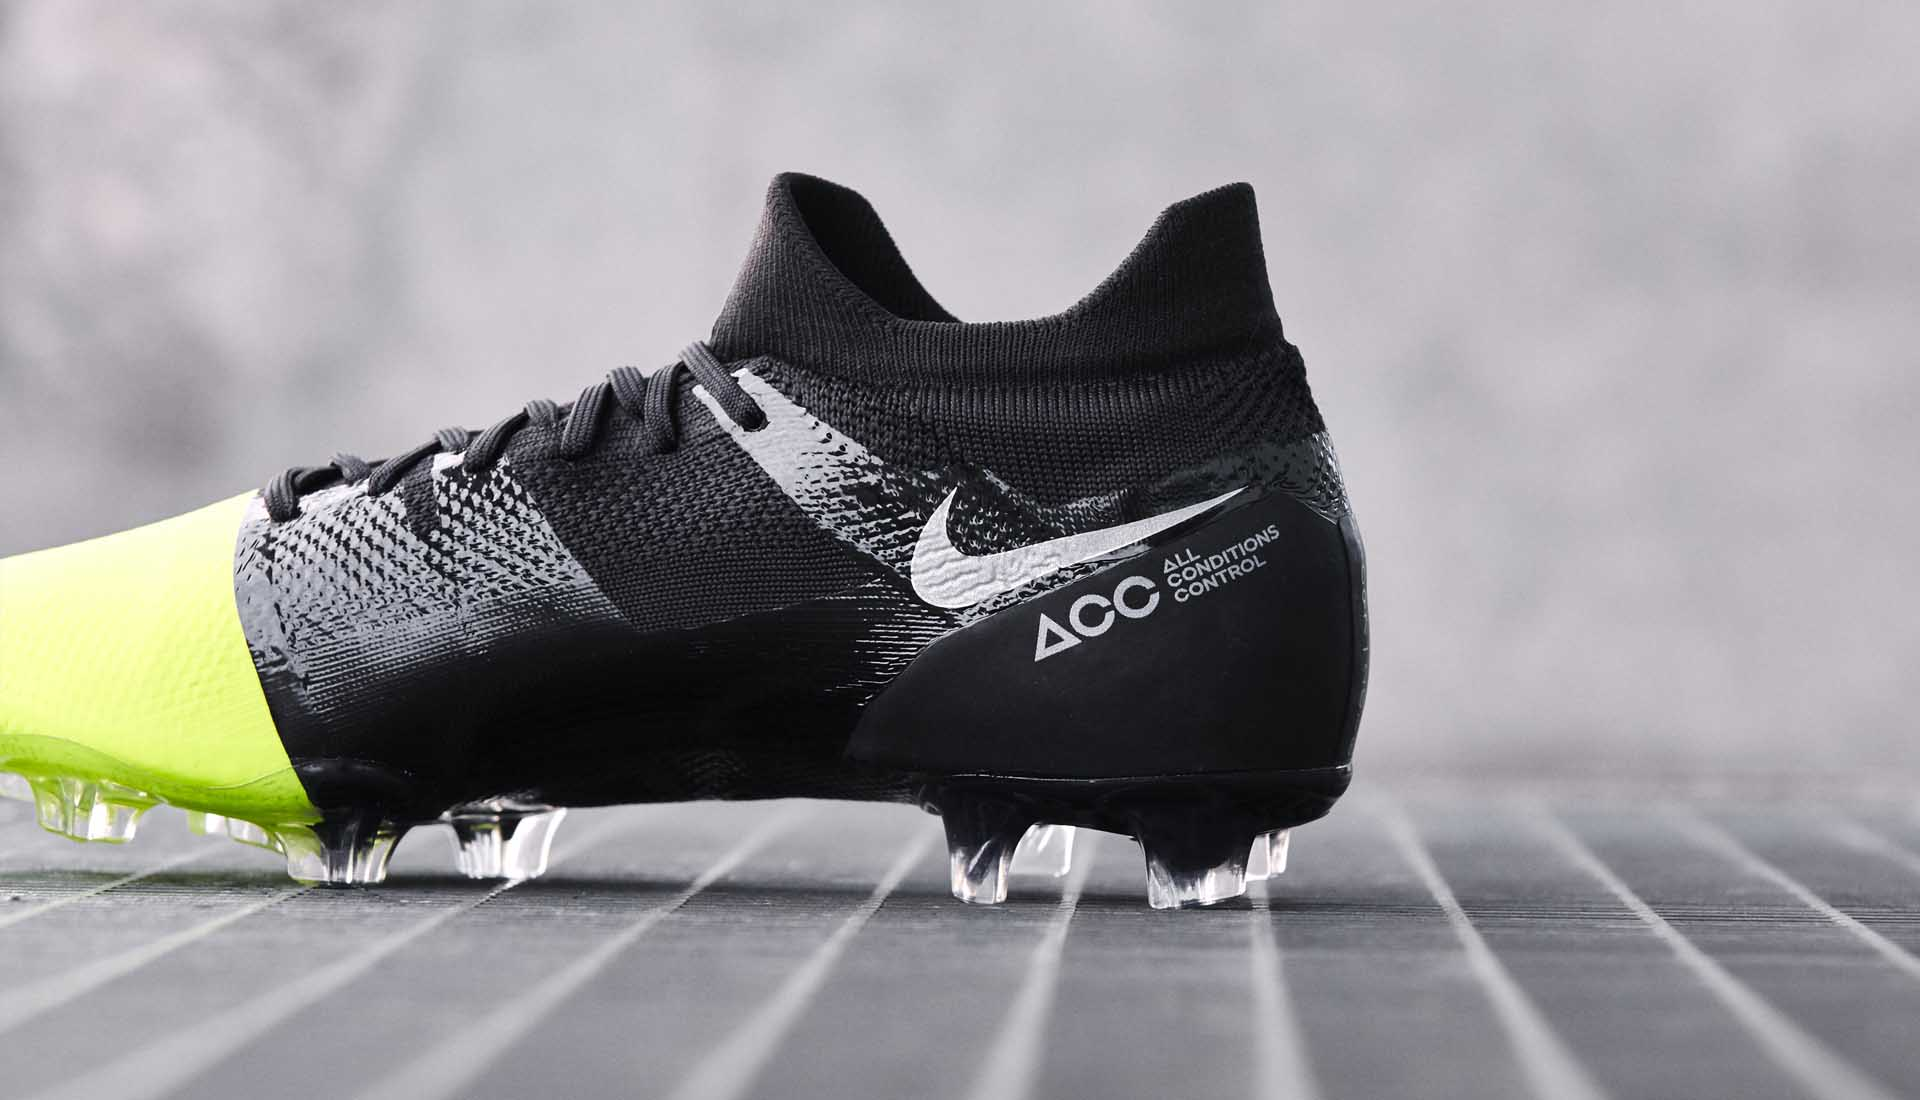 exquisite design exclusive shoes classic shoes Nike Launch The Mercurial Superfly GS 360 Edition - SoccerBible